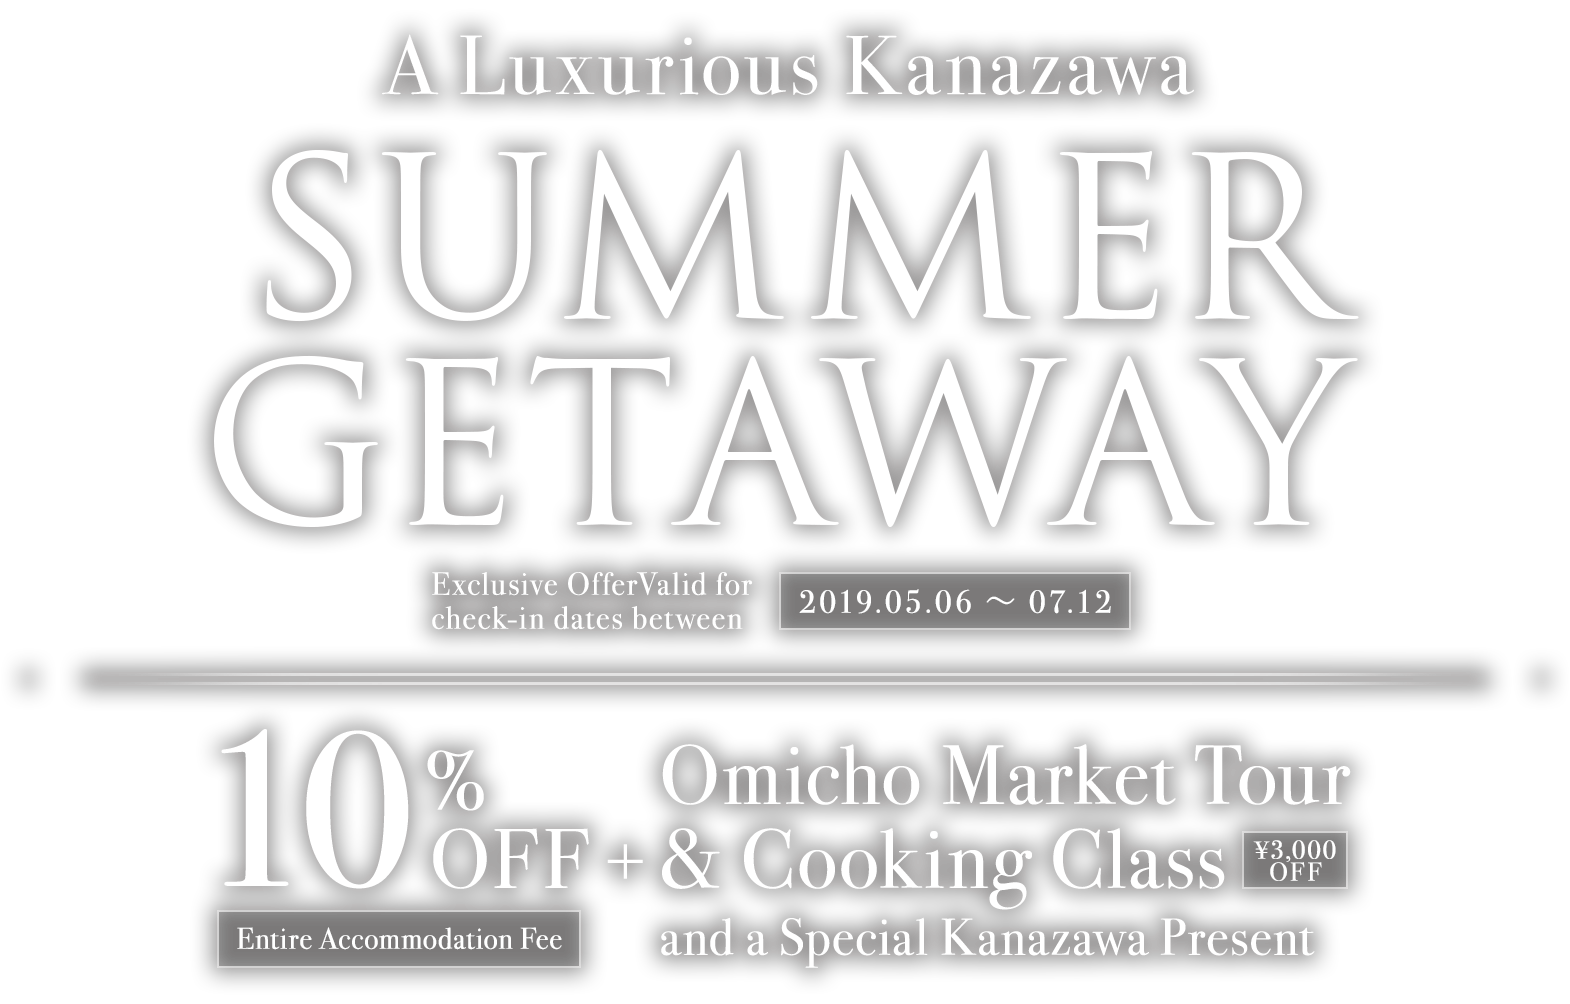 Kanazawa Summer Holiday Deals | 10% Discount + Omicho Market Tour & Cooking Experience | Limited Time